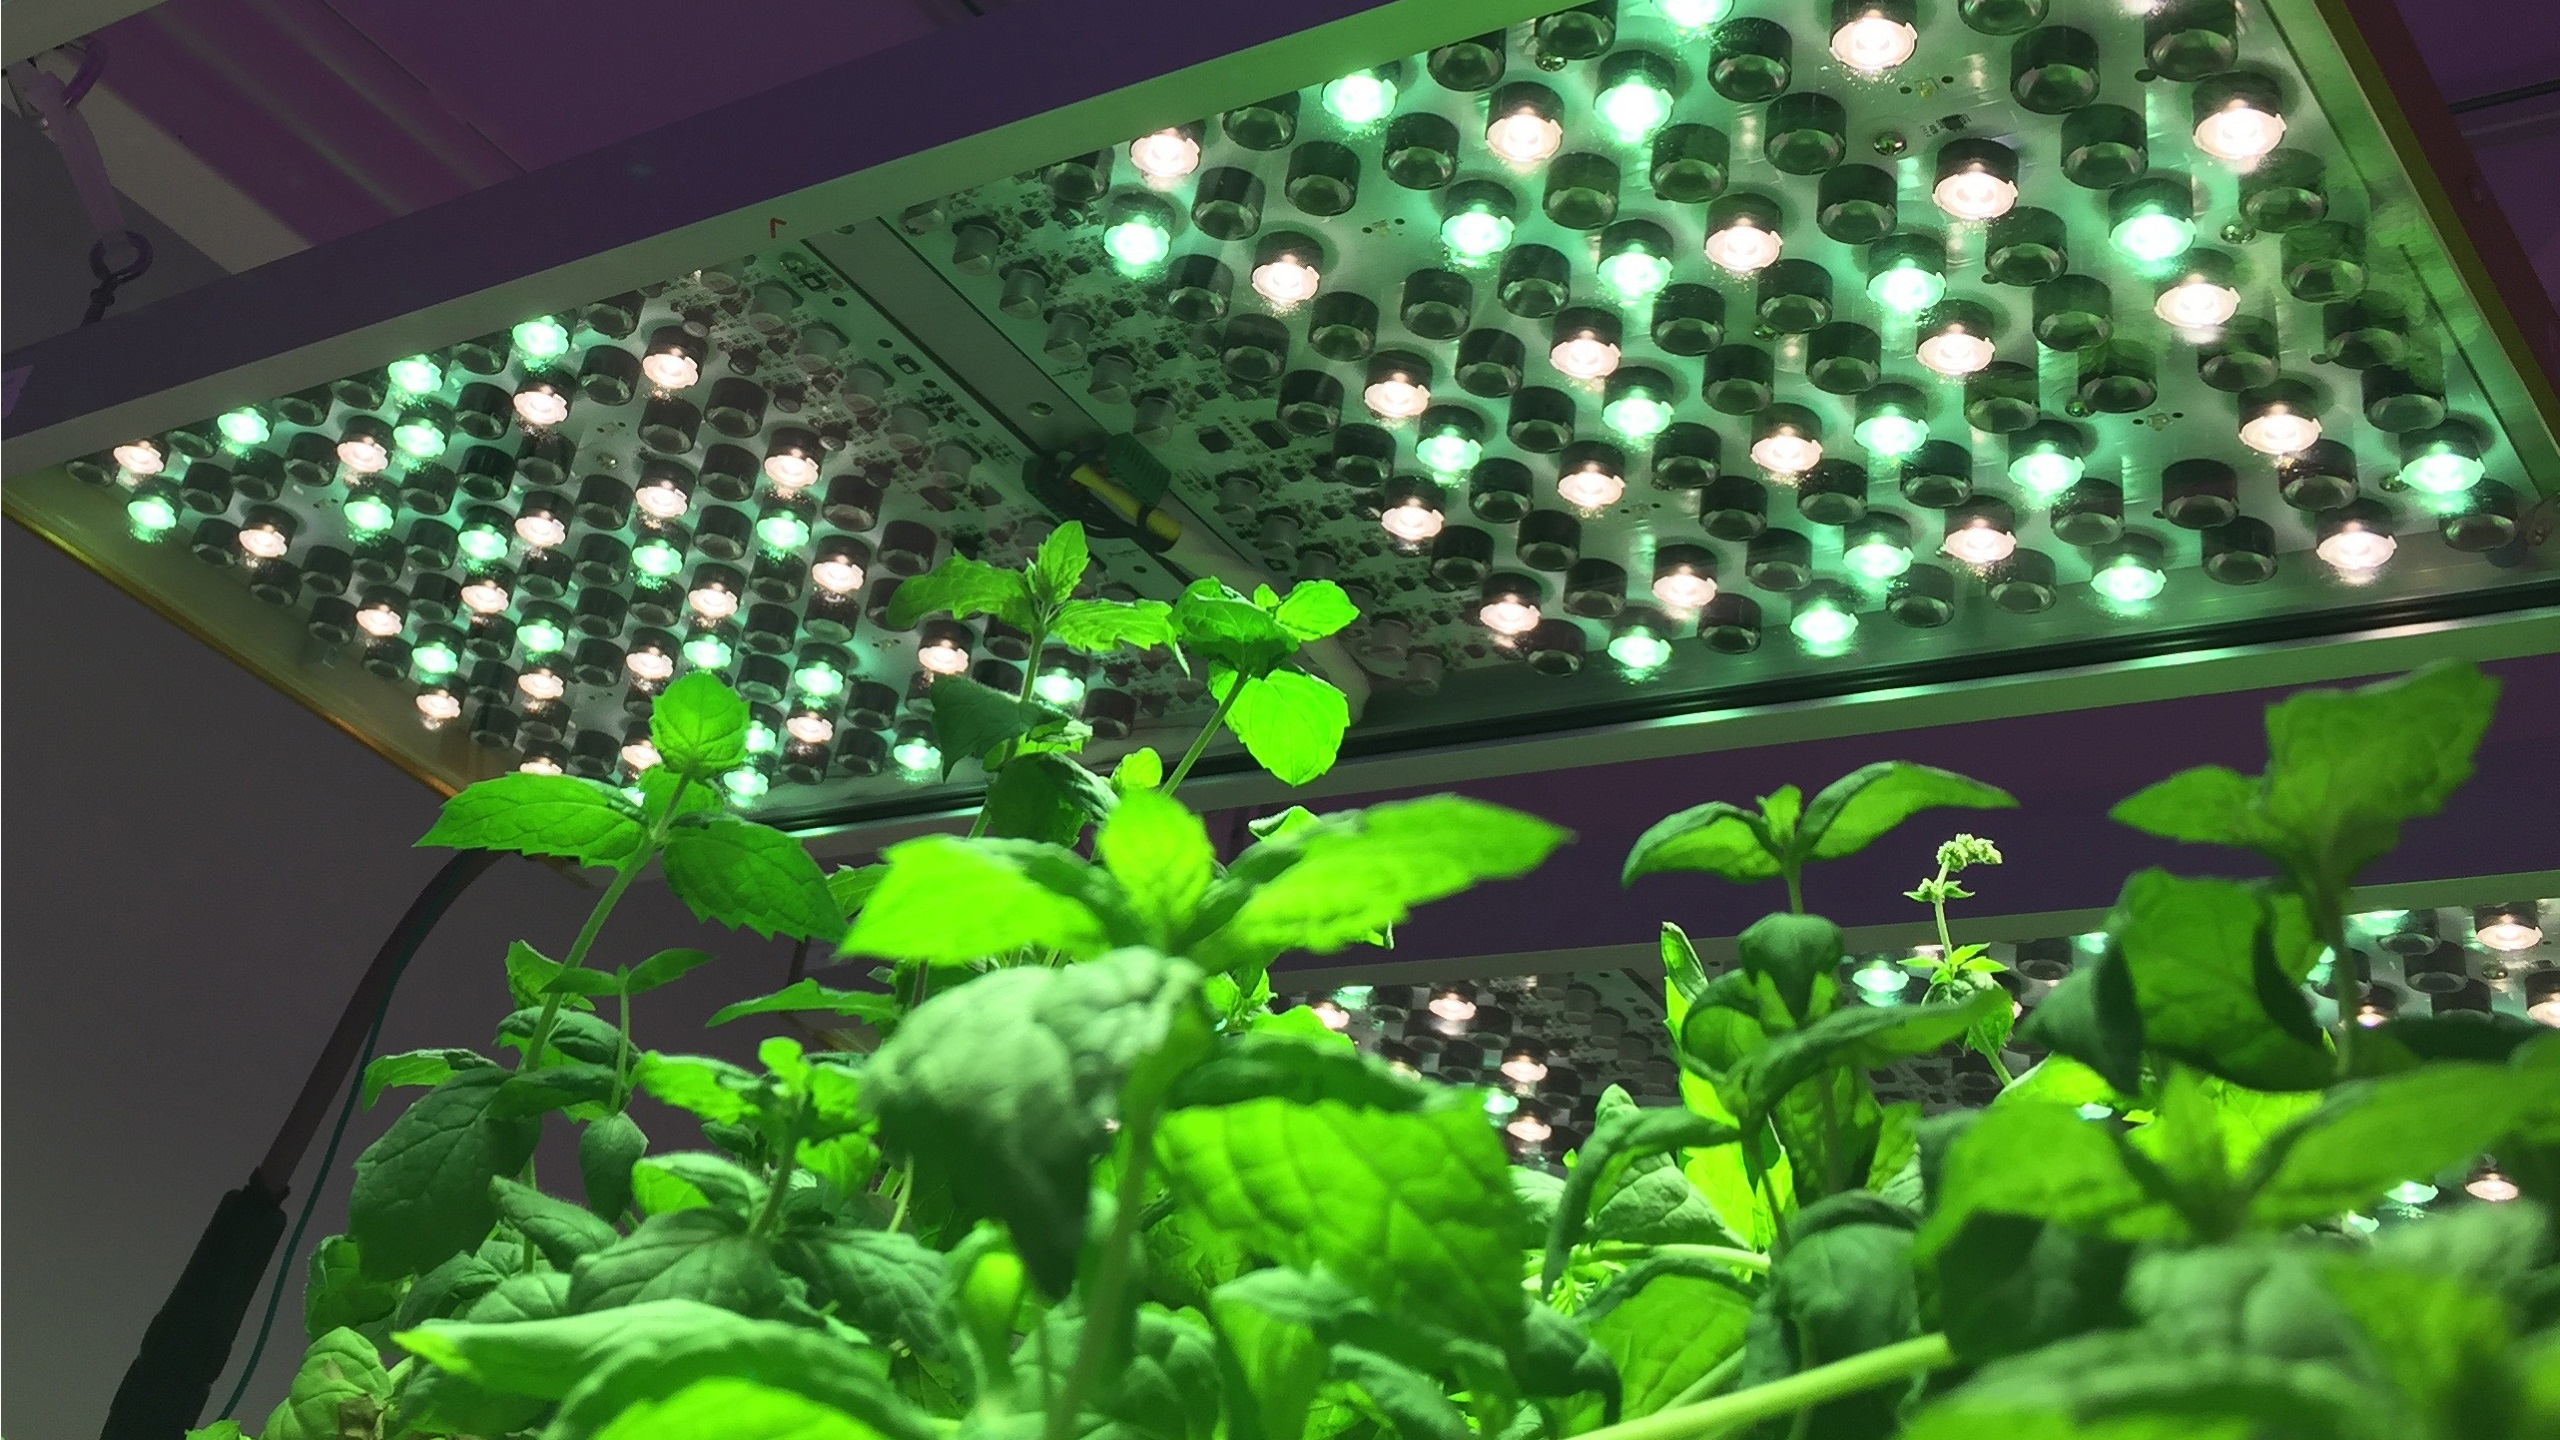 Osram smart LED grow lights